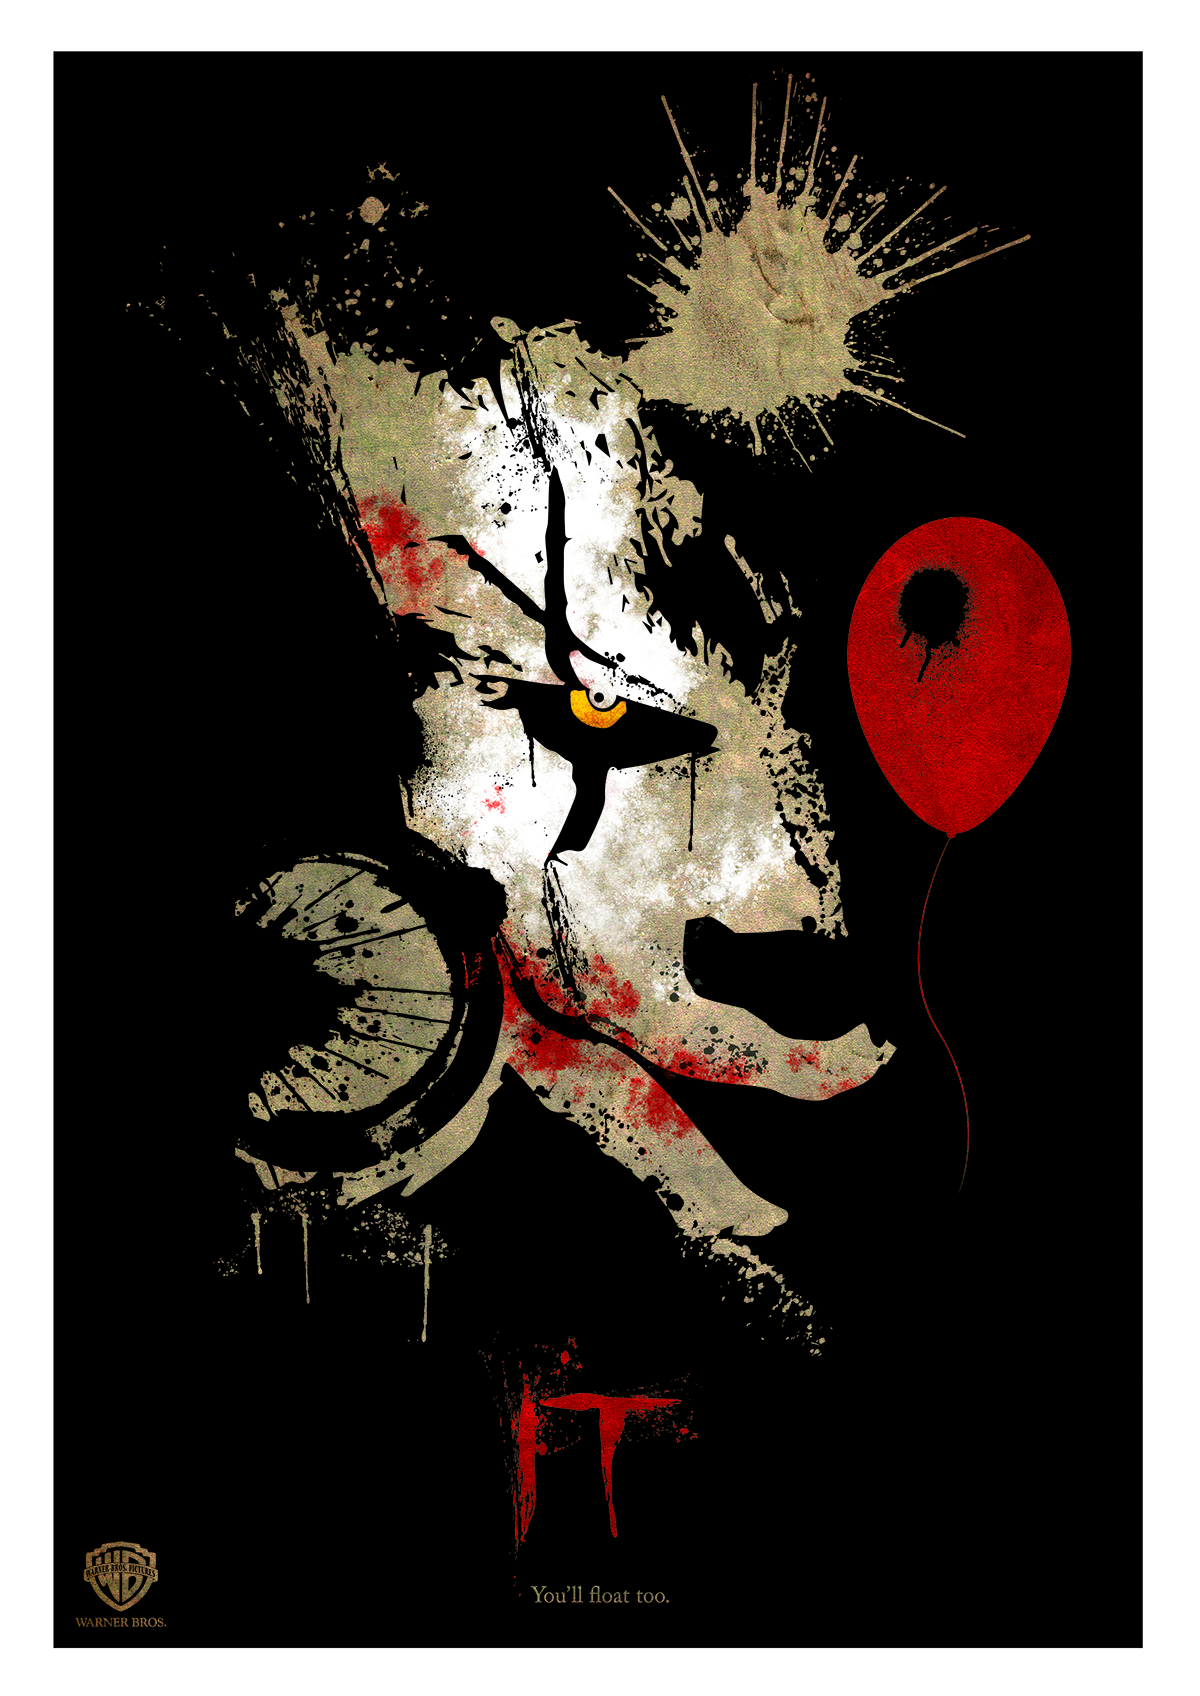 """PENNYWISE THE CLOWN """"IT"""" 2017 Poster... - PosterSpy"""